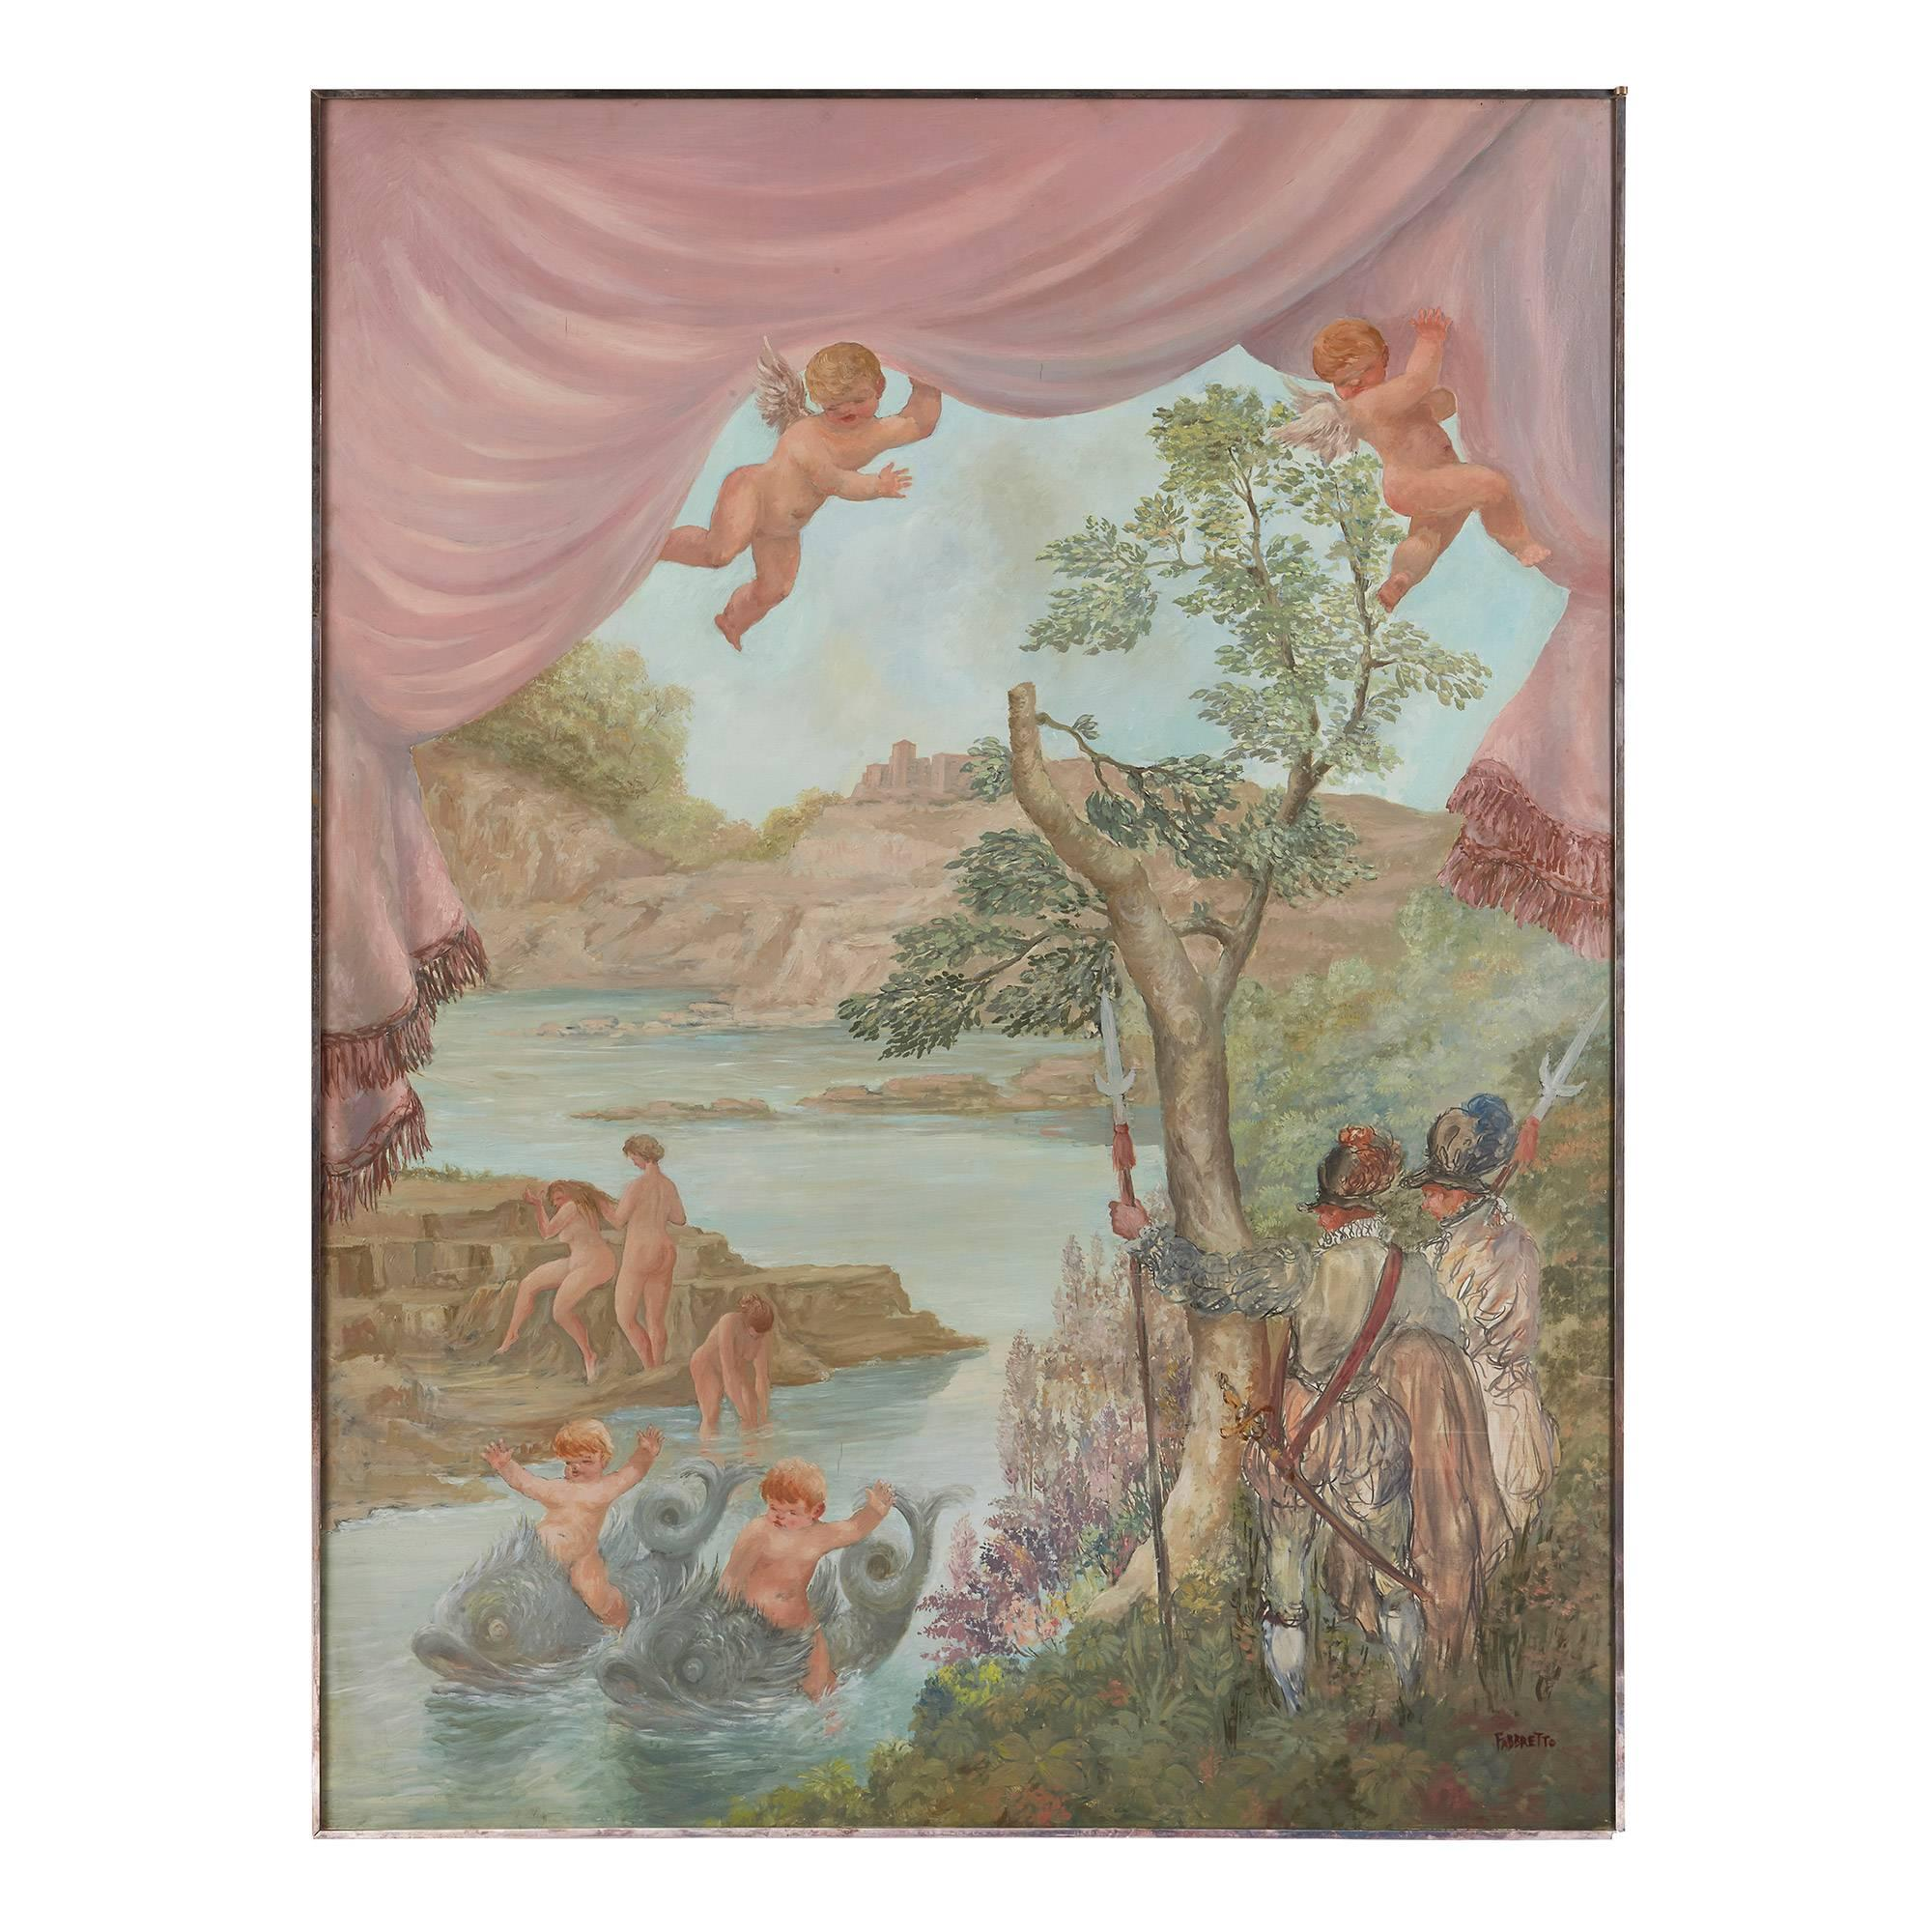 Cavaliers Watching Bathing Nymphs, large oil on canvas painting by Fabretto